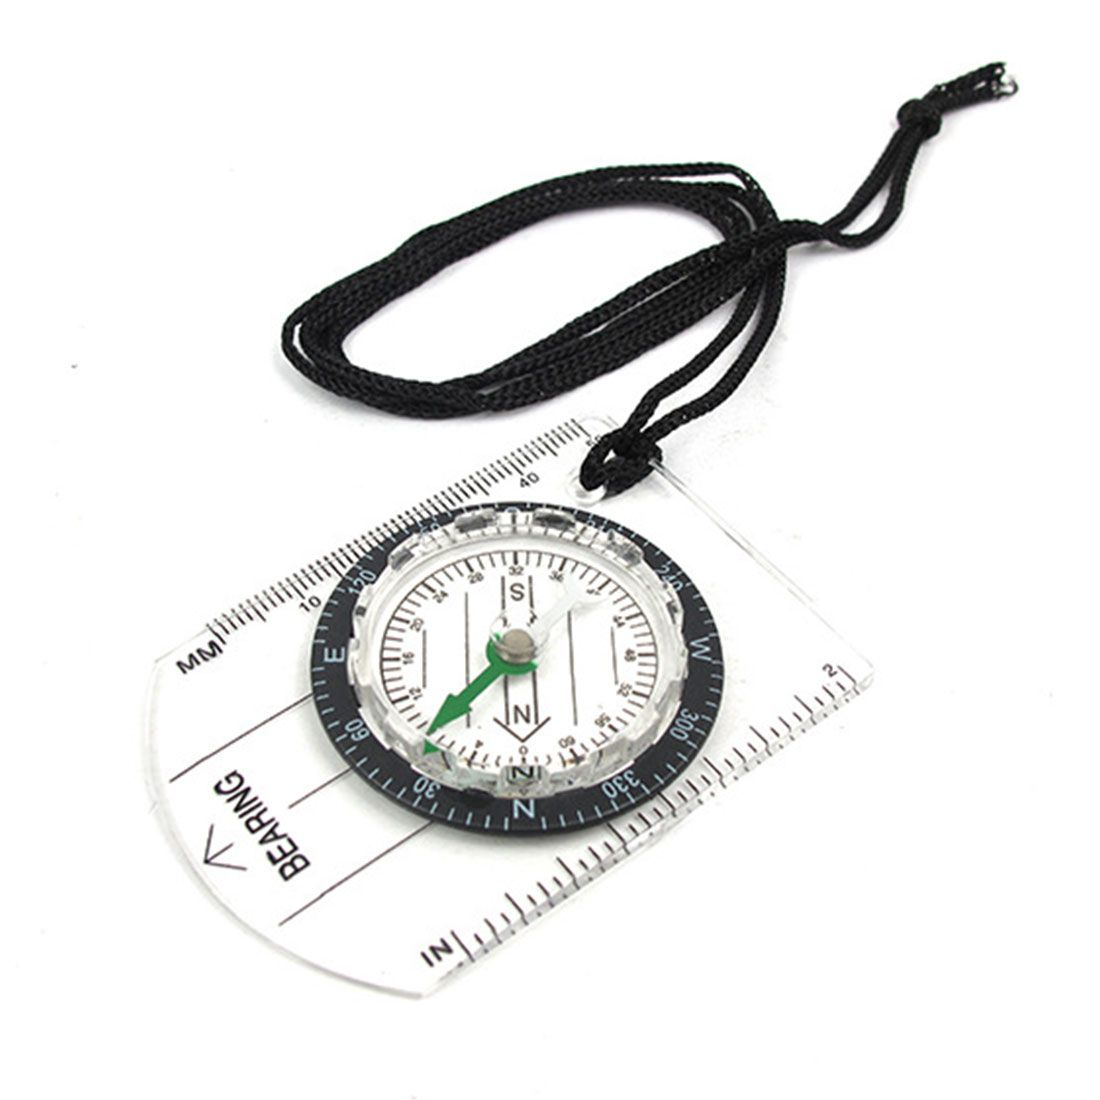 New Design 1pcs Portable Compass Outdoor Hiking Camping